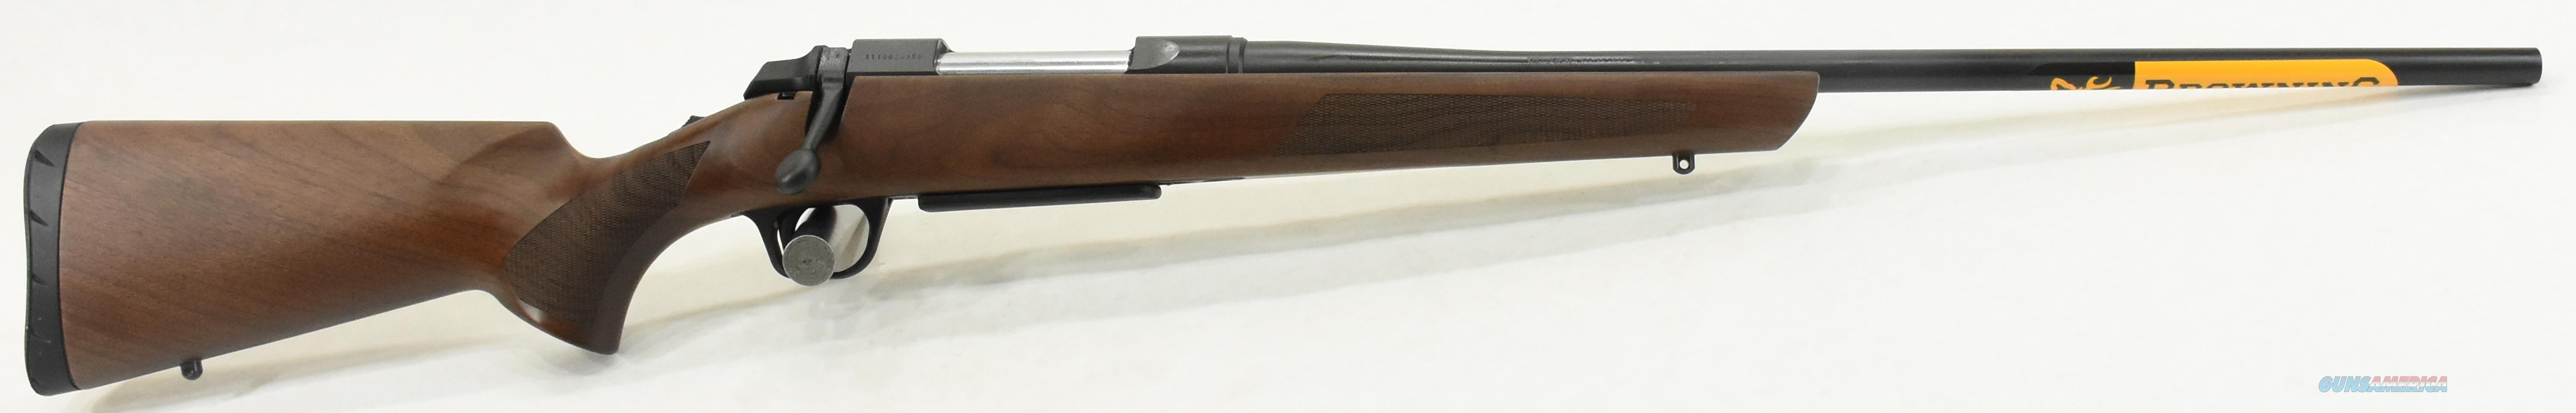 Abolt III Hunter Walunt 6.5CM 22In  035801282  Guns > Rifles > Browning Rifles > Bolt Action > Hunting > Blue